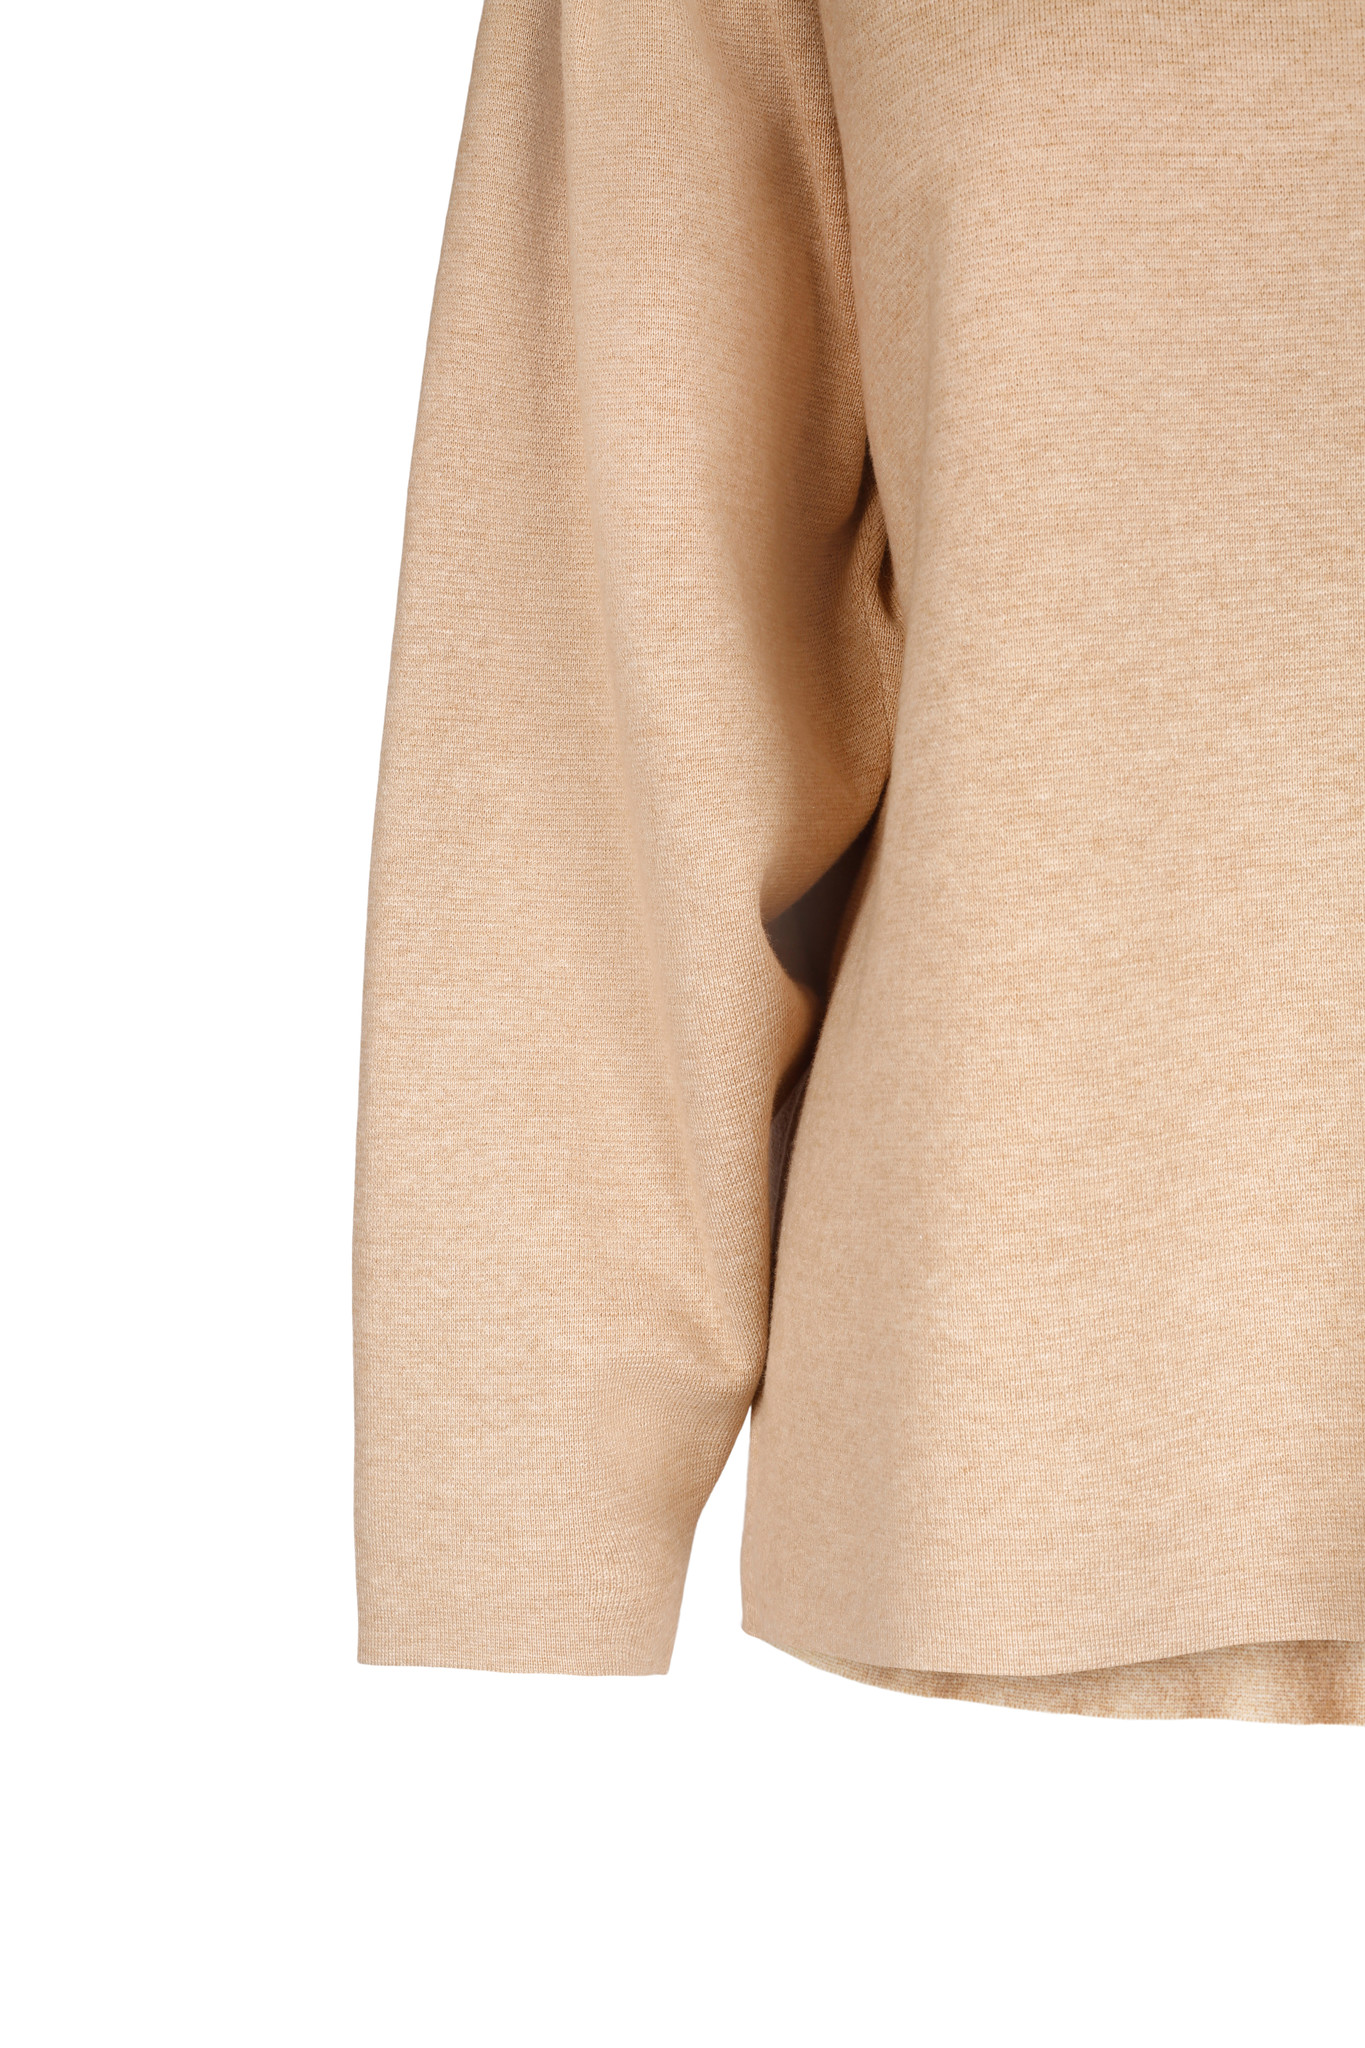 Claire Sweater - Camel Melange-3